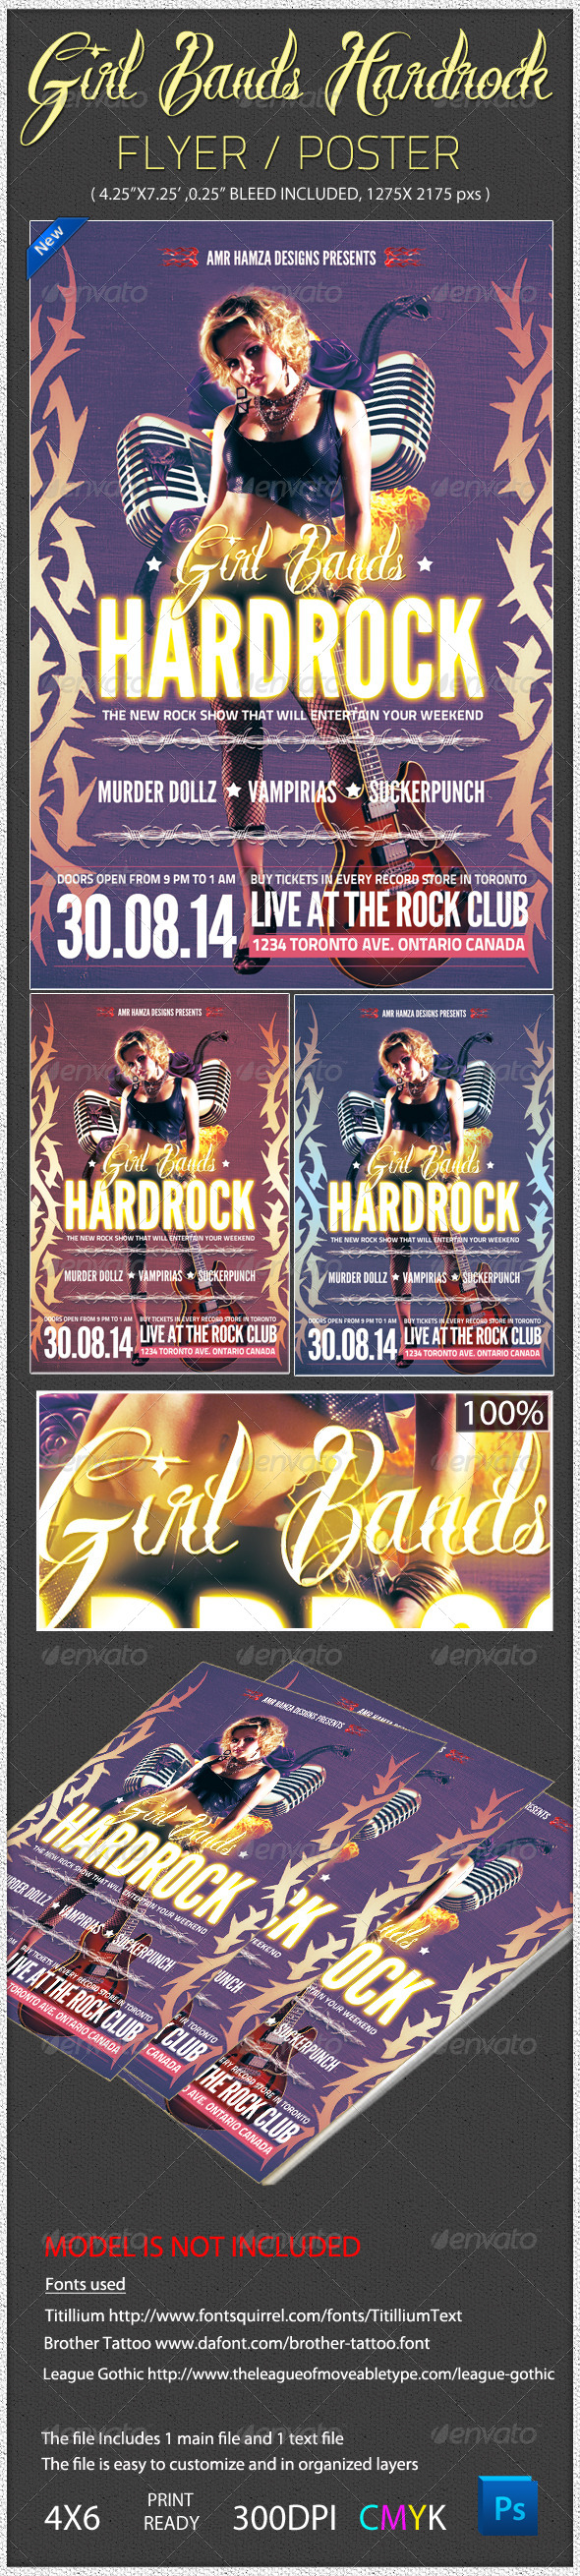 Girl Bands Hardrock Flyer Poster